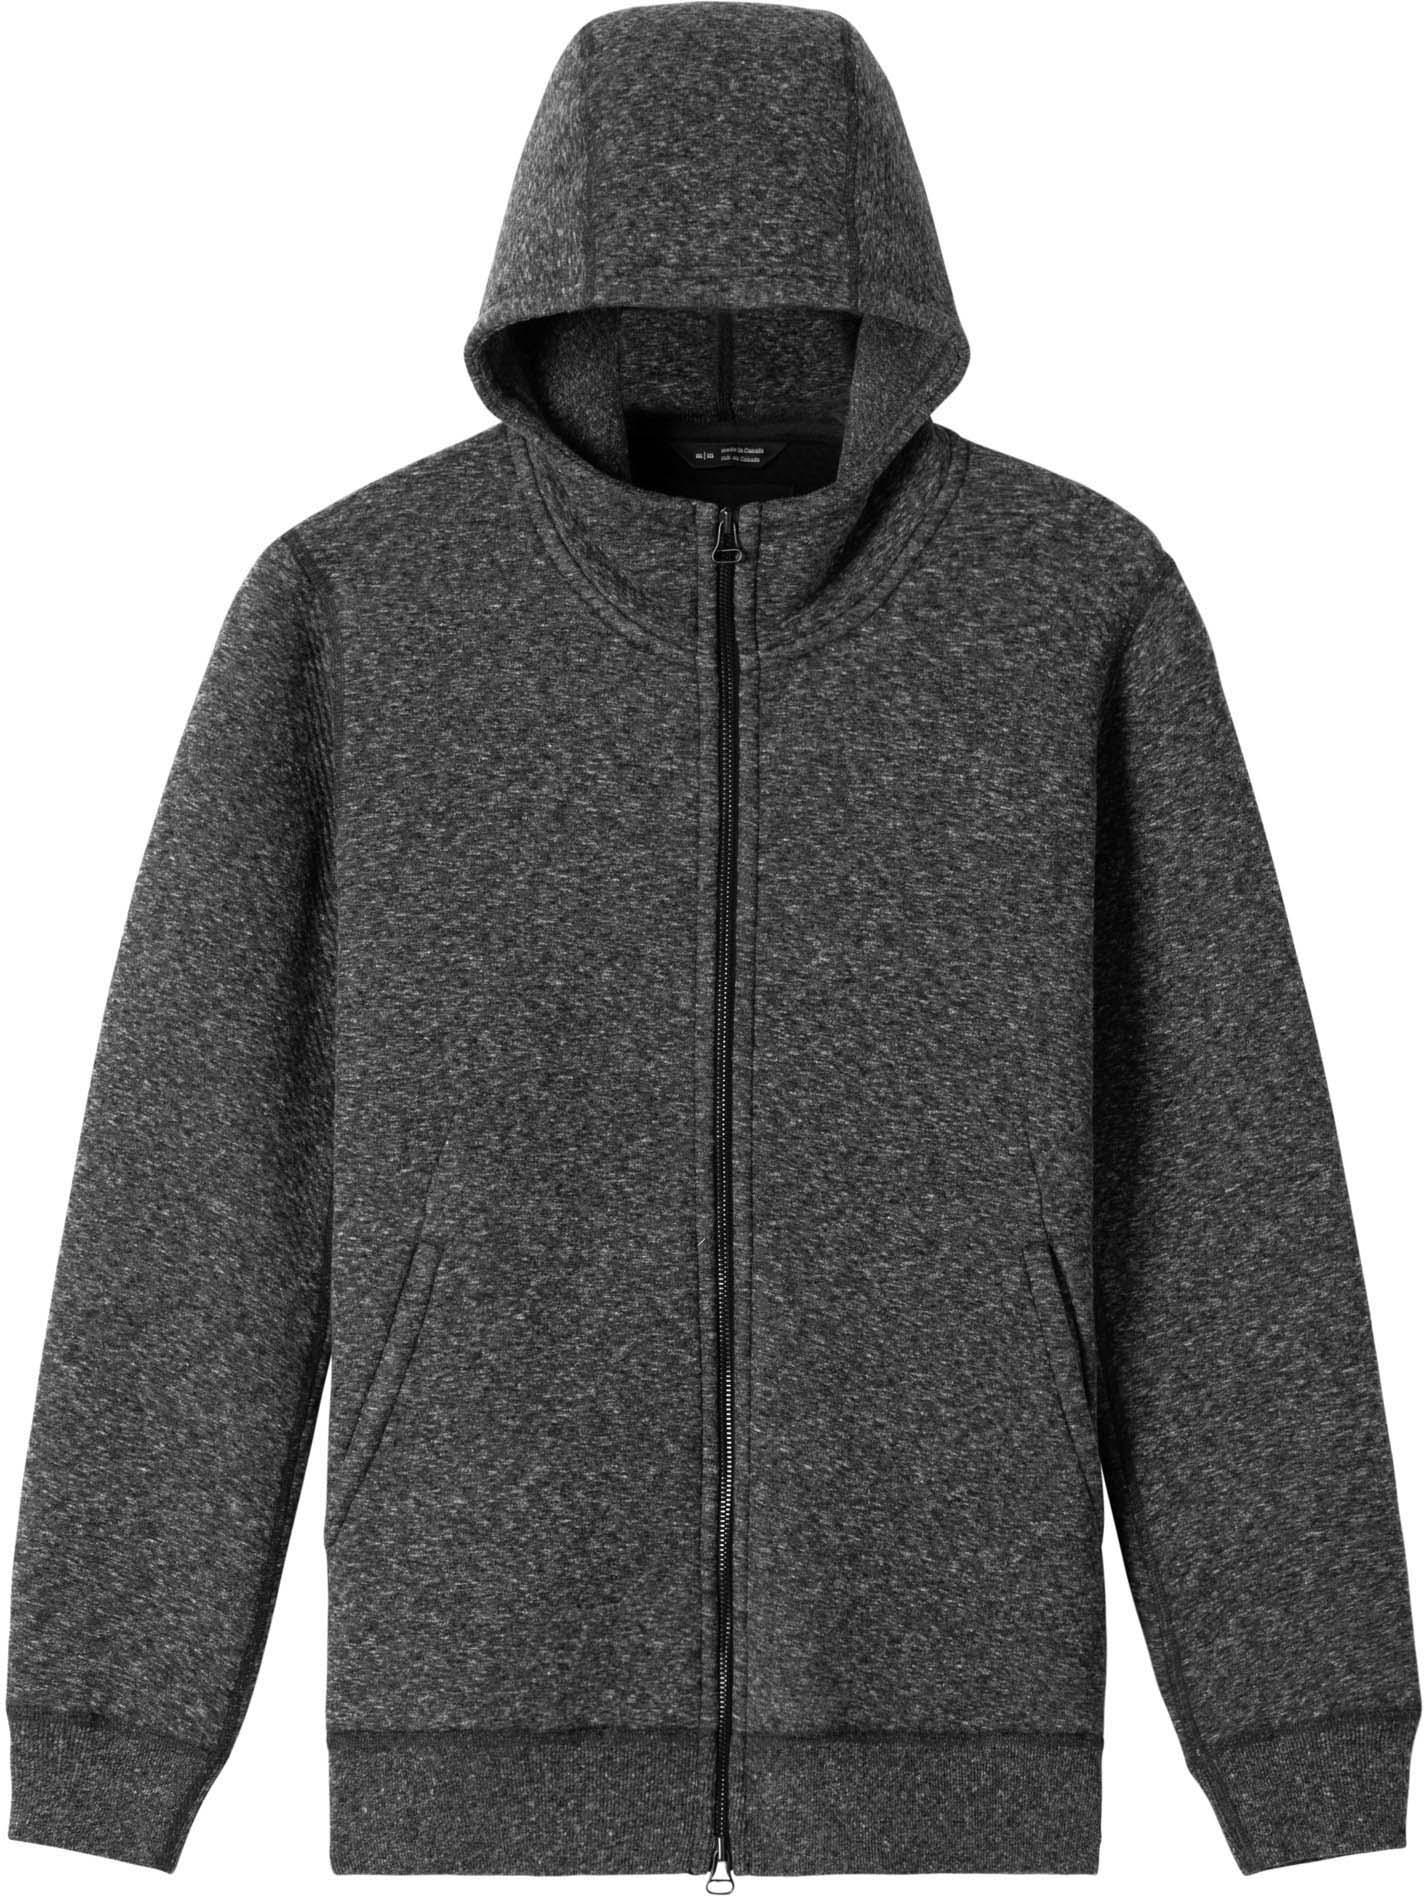 Cabin Fleece Zip Hoodie - Melange Black by wings+horns